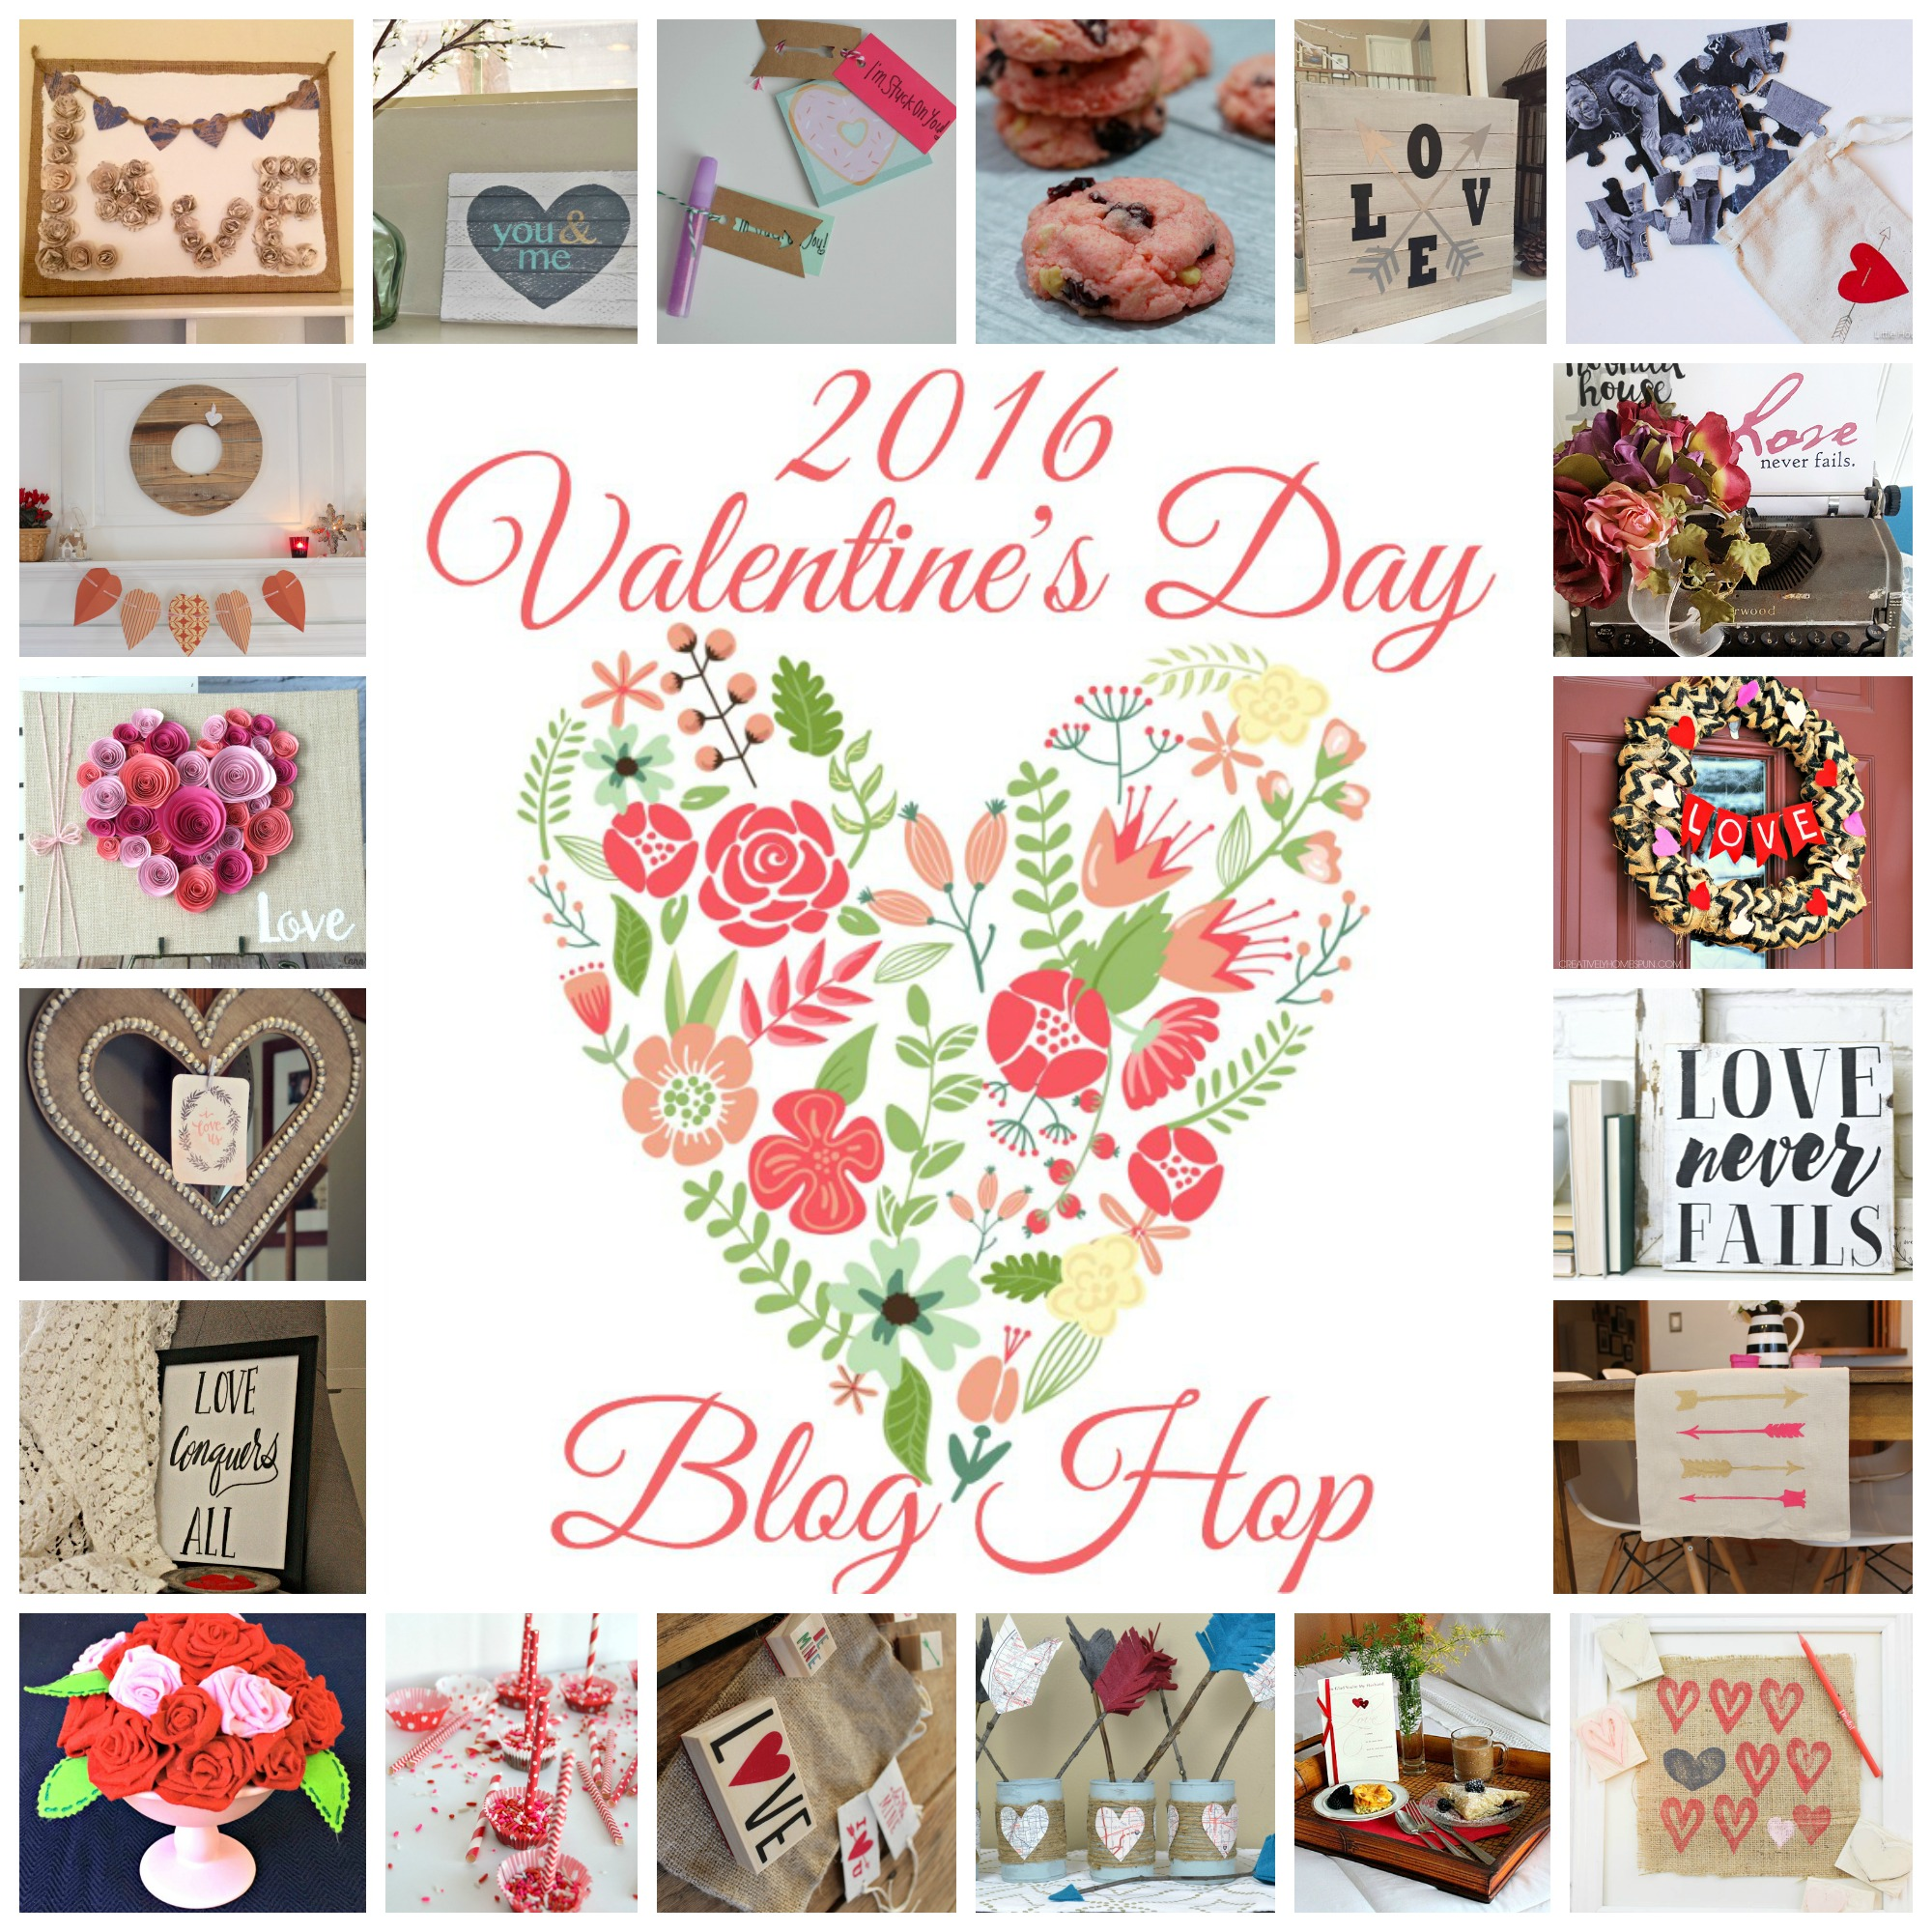 Valentines Collage - heart DIY wood sign